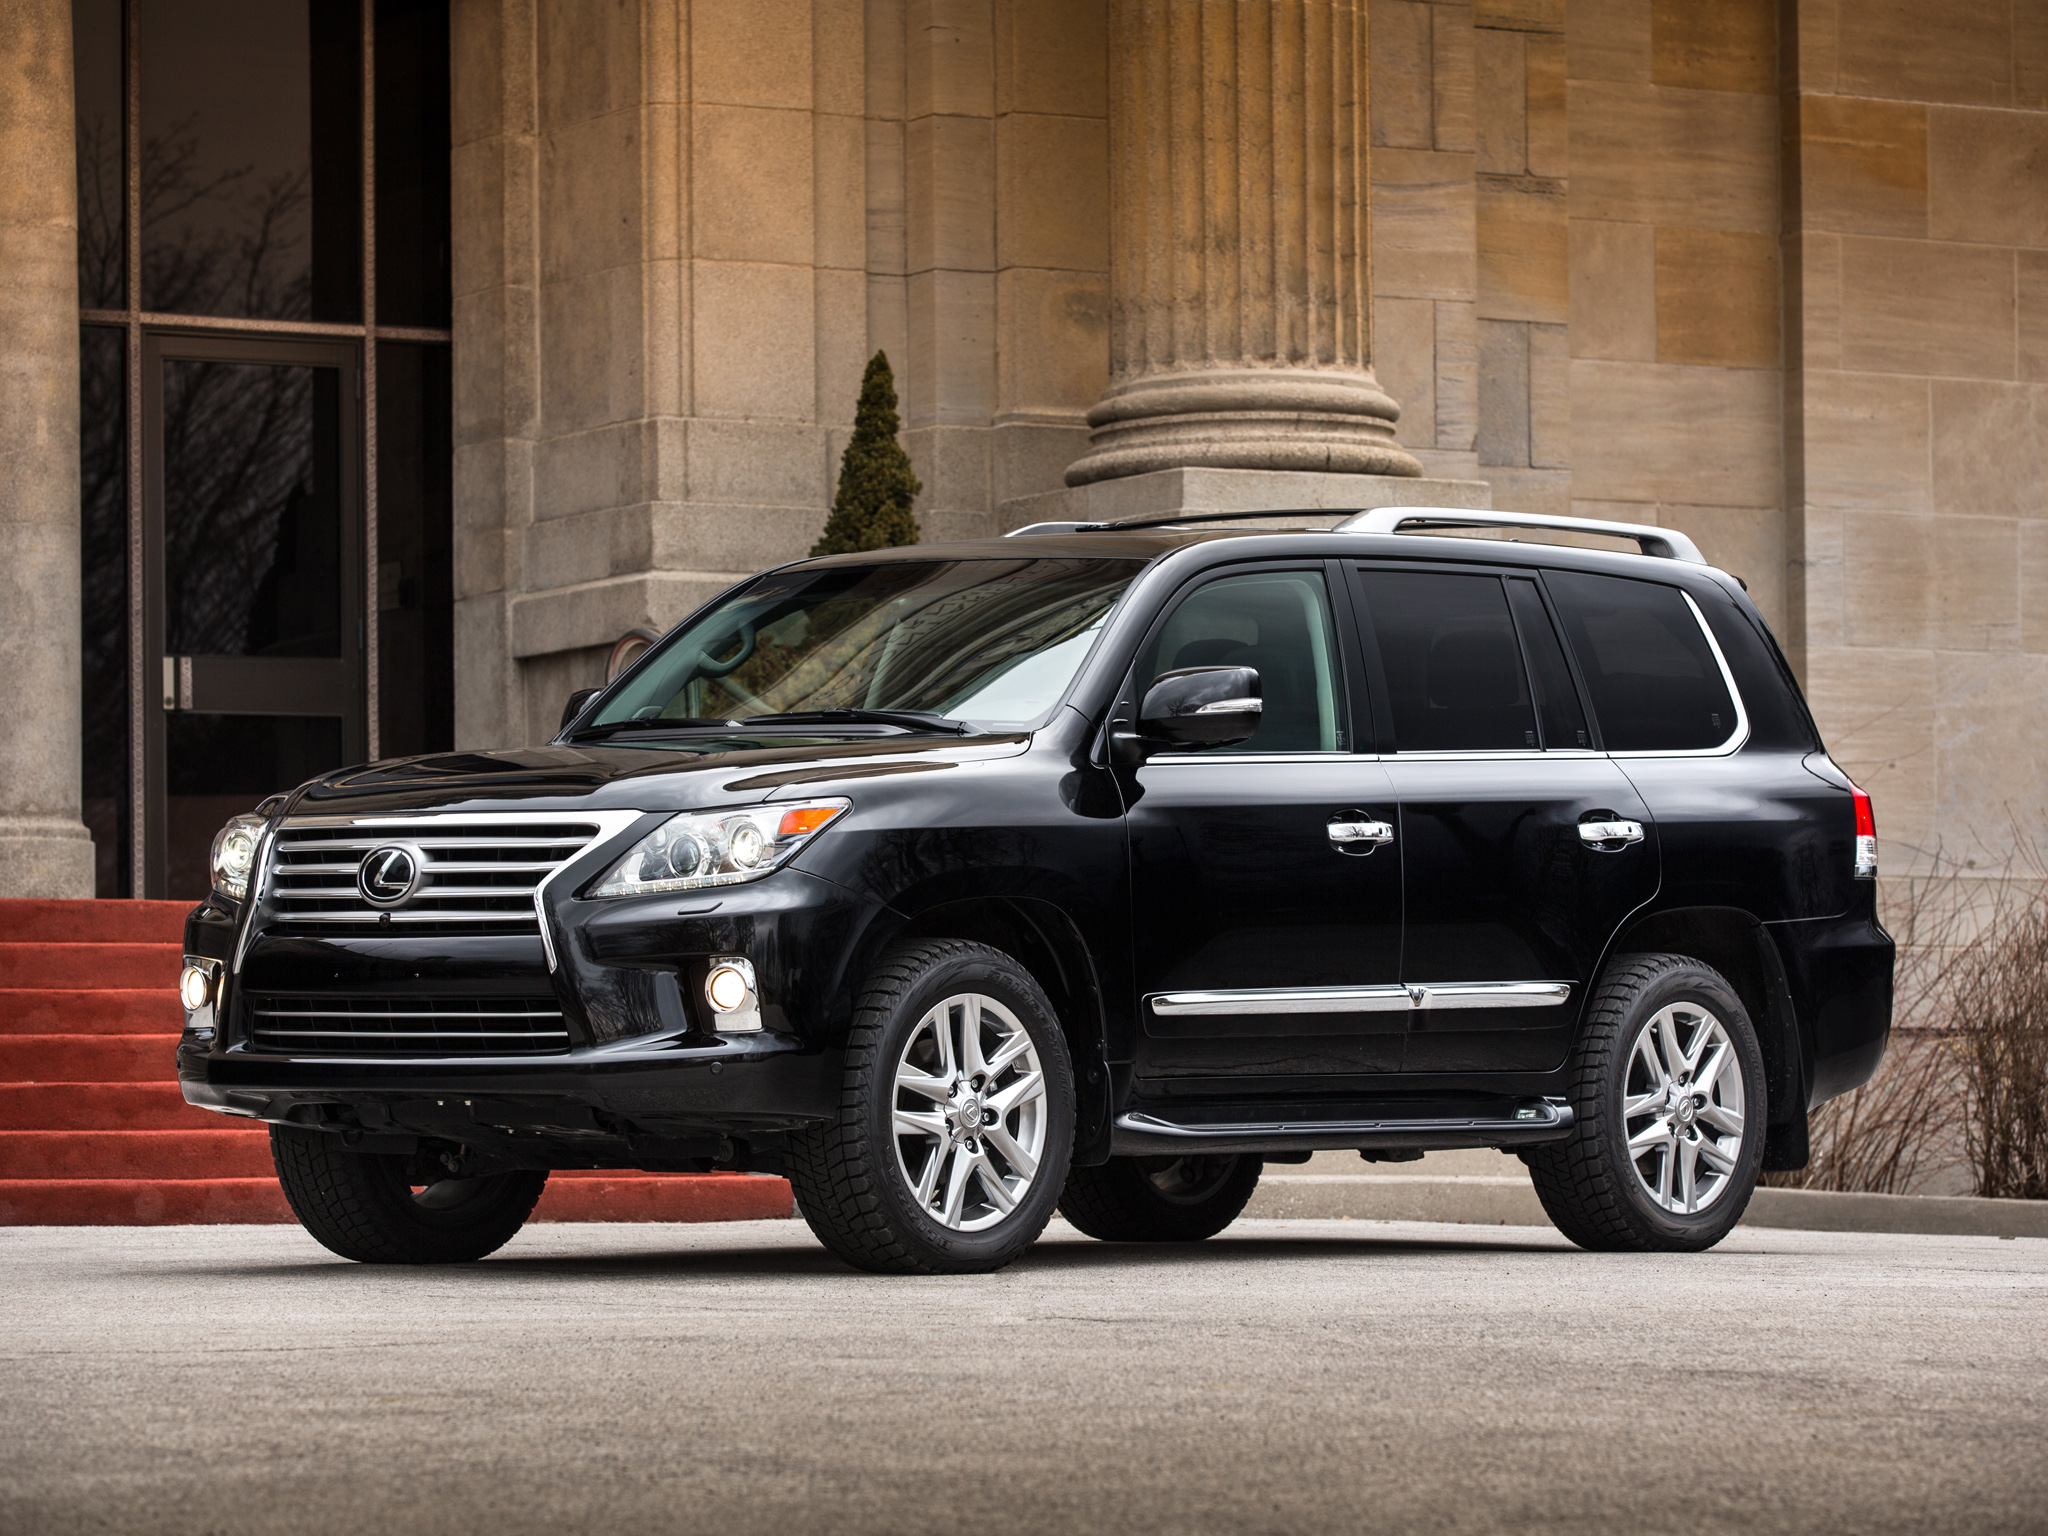 Car Wallpaper Slideshow 6 Lexus Lx Hd Wallpapers Background Images Wallpaper Abyss